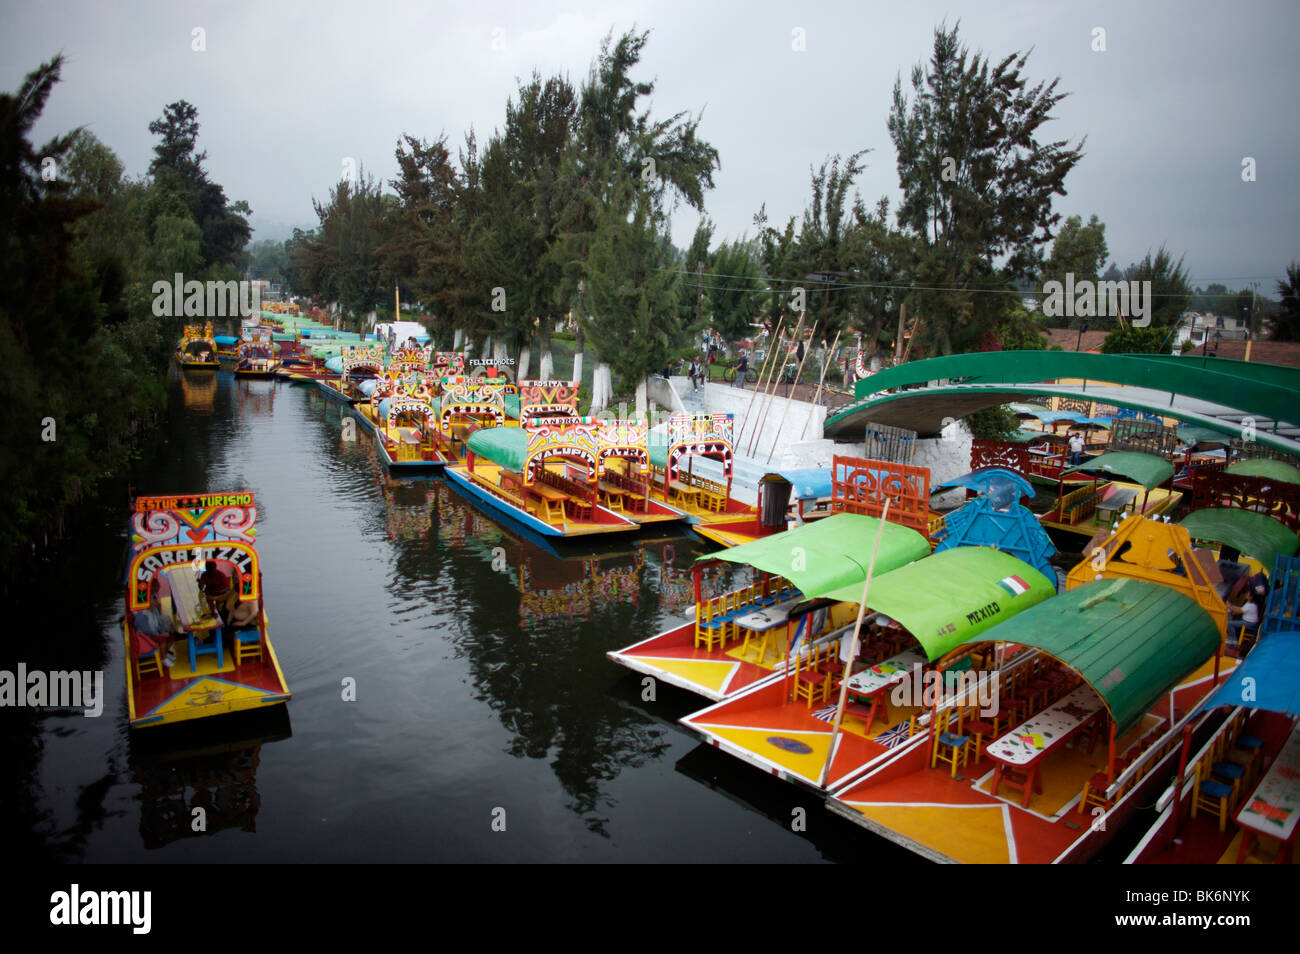 Tourists Ride In A Boat Through The Water Canals Of Xochimilco On The Stock Photo 29037783 Alamy